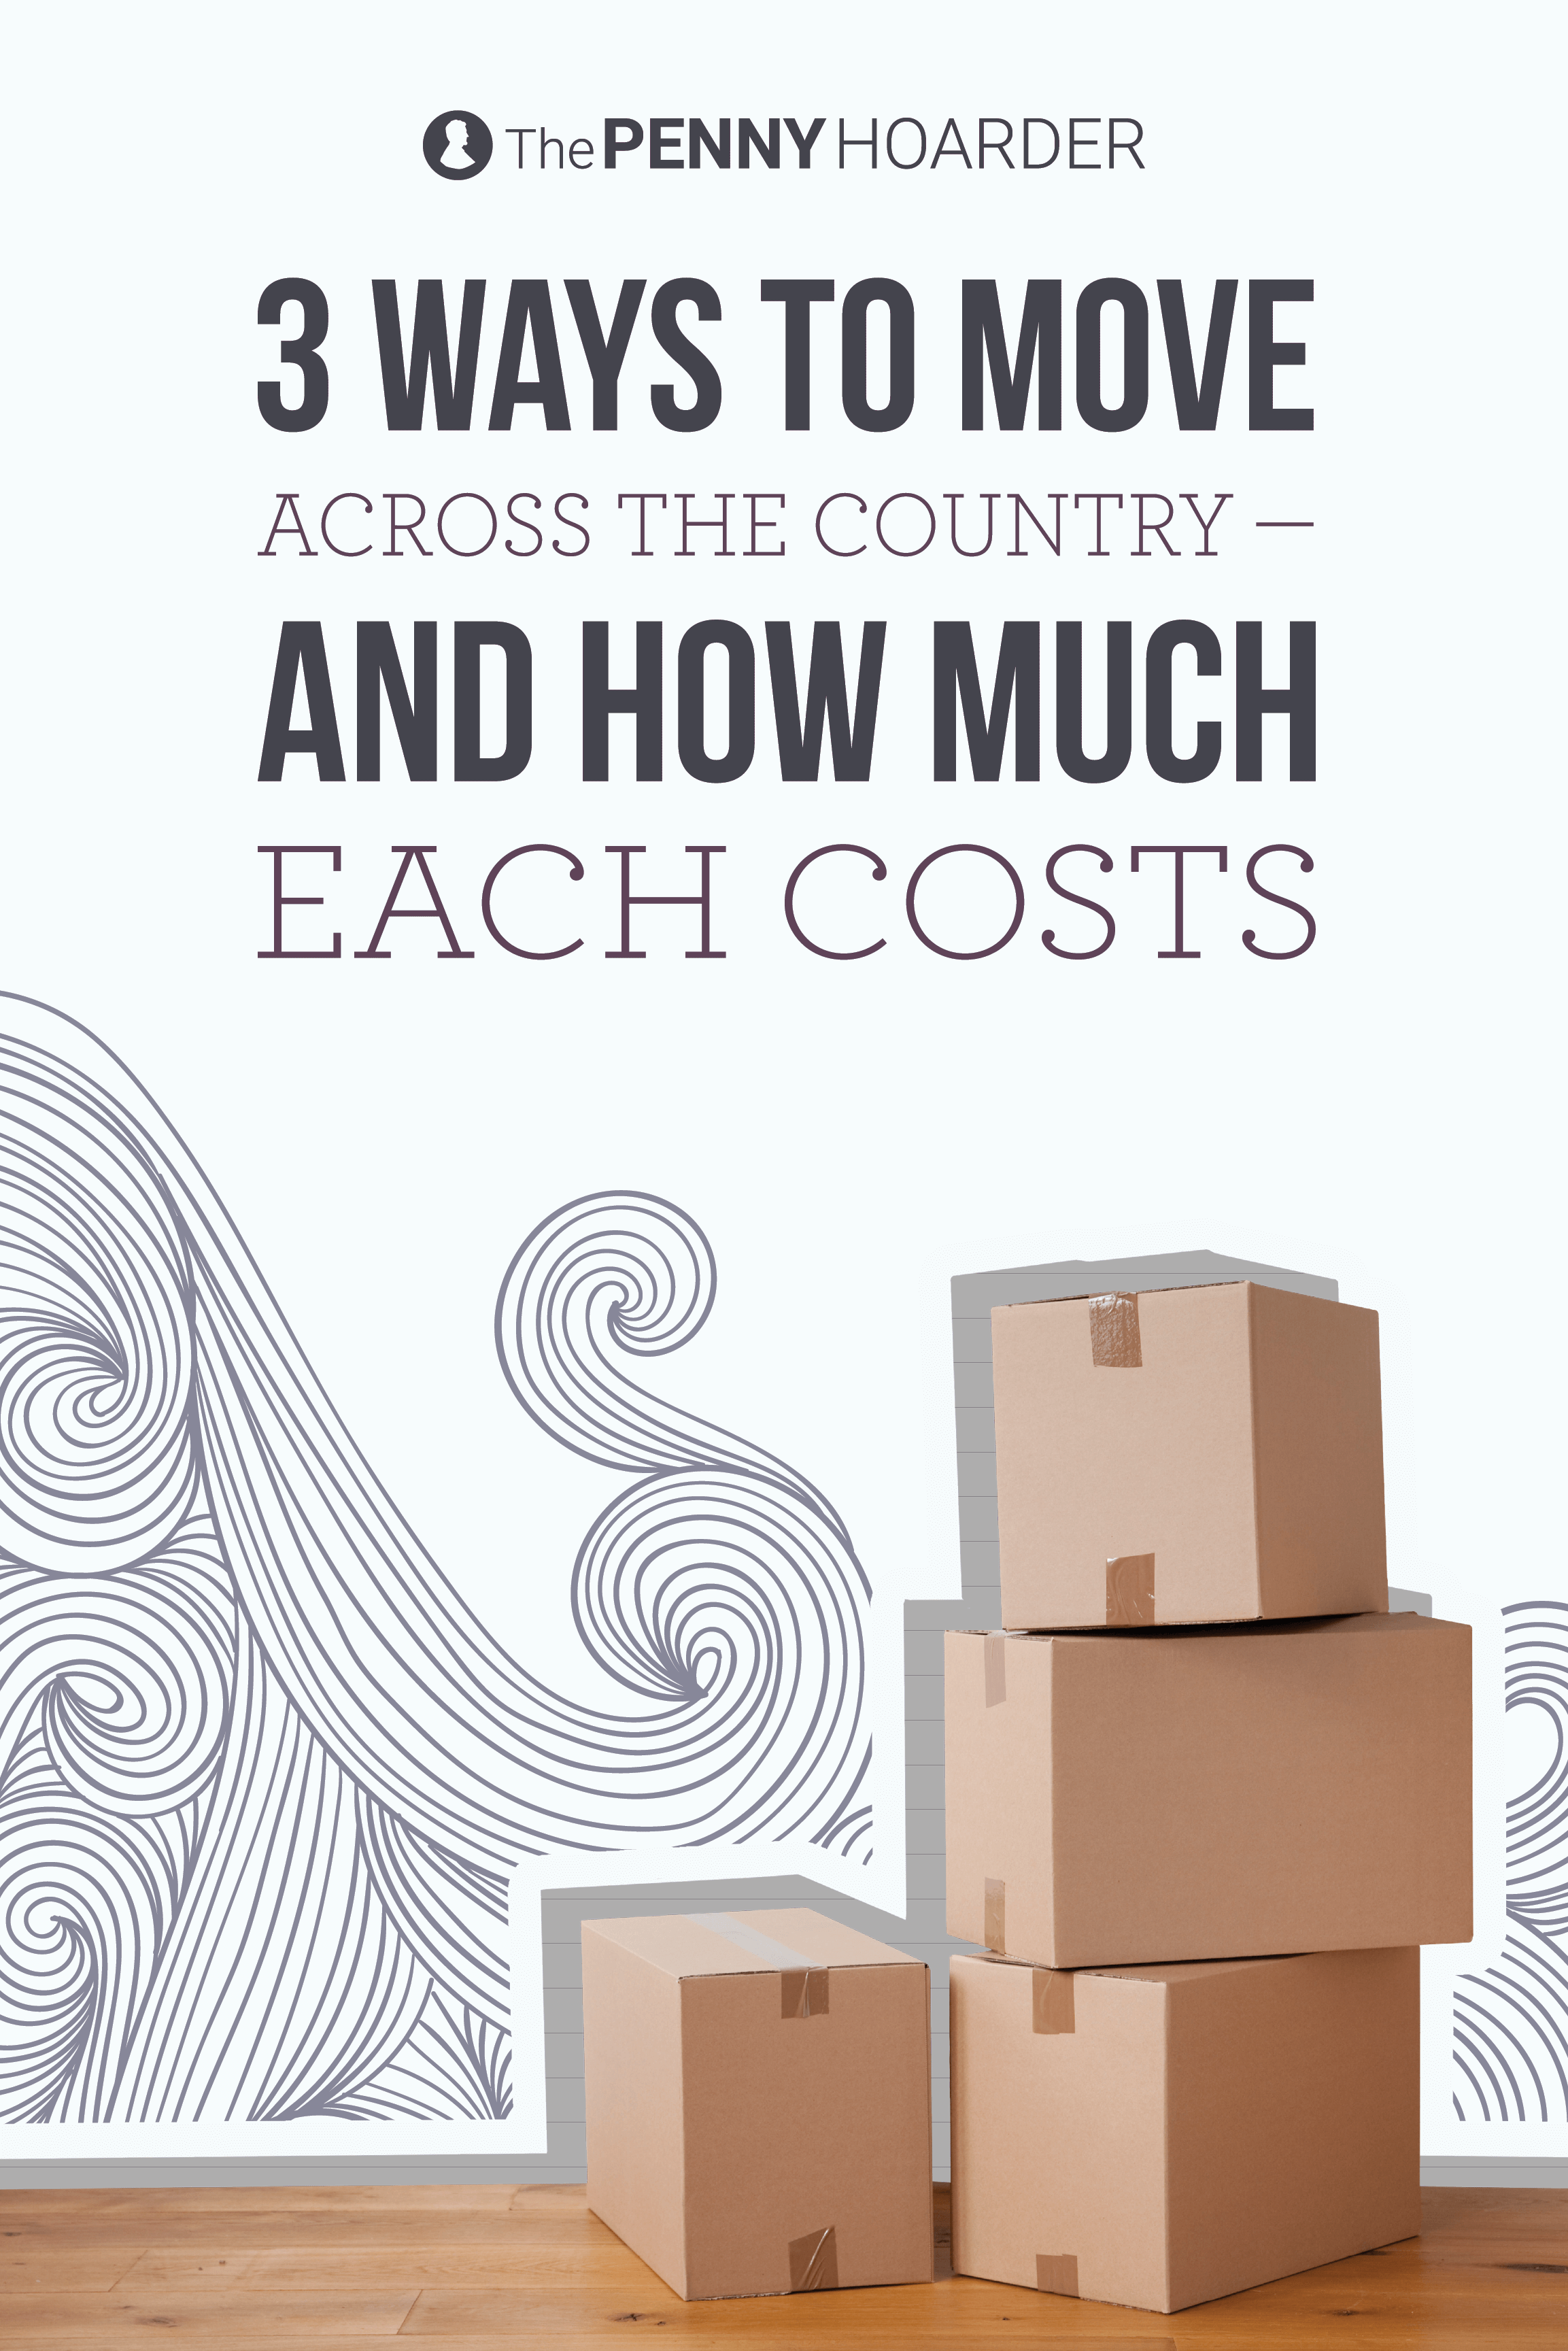 3 Ways to Move Across the Country and How Much Each Costs Big